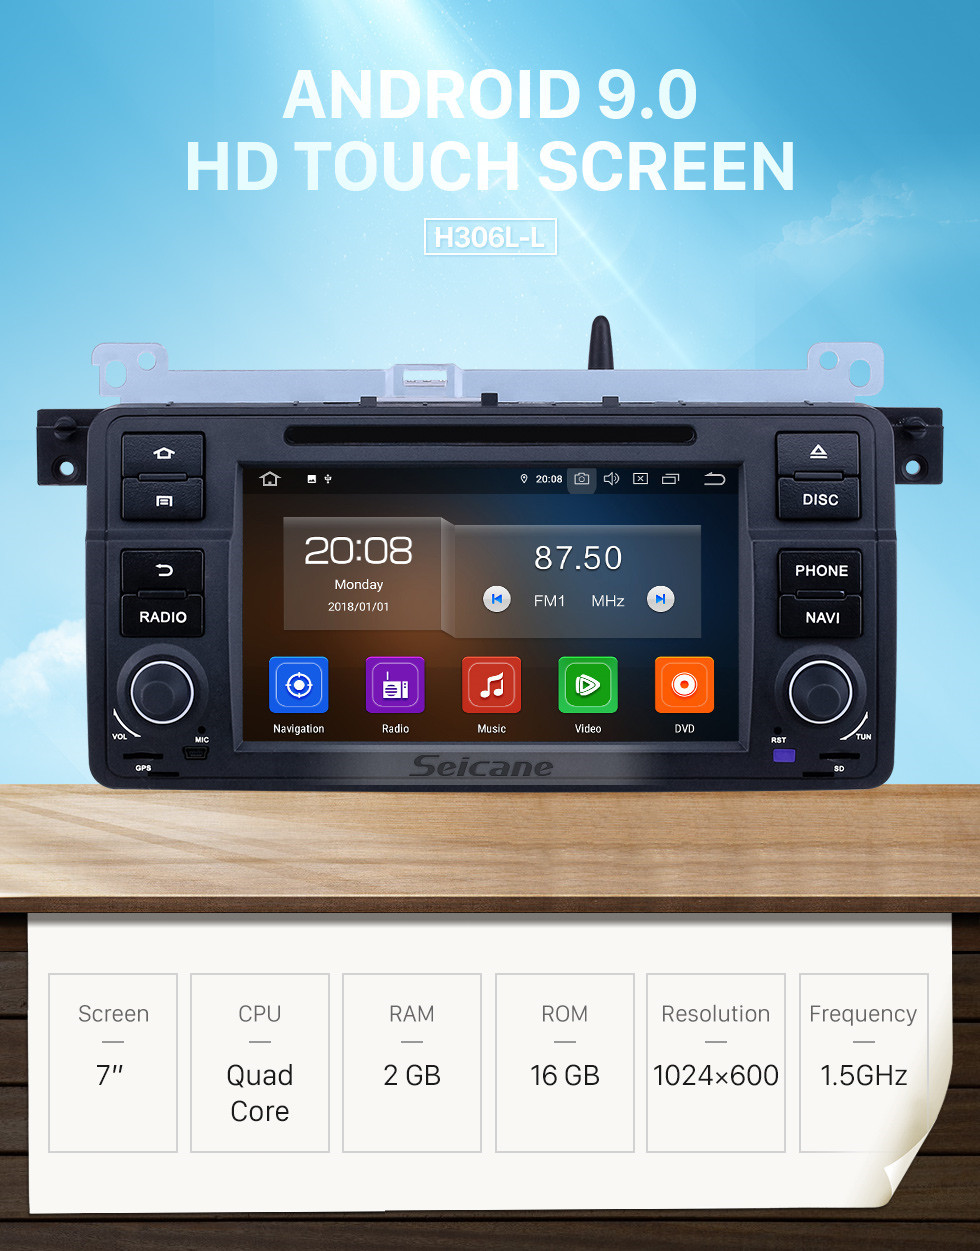 Seicane 7 inch Android 9.0 GPS Navigation Radio for 1999-2004 MG ZT with HD Touchscreen Carplay Bluetooth Music WIFI AUX support OBD2 SWC DAB+ DVR TPMS